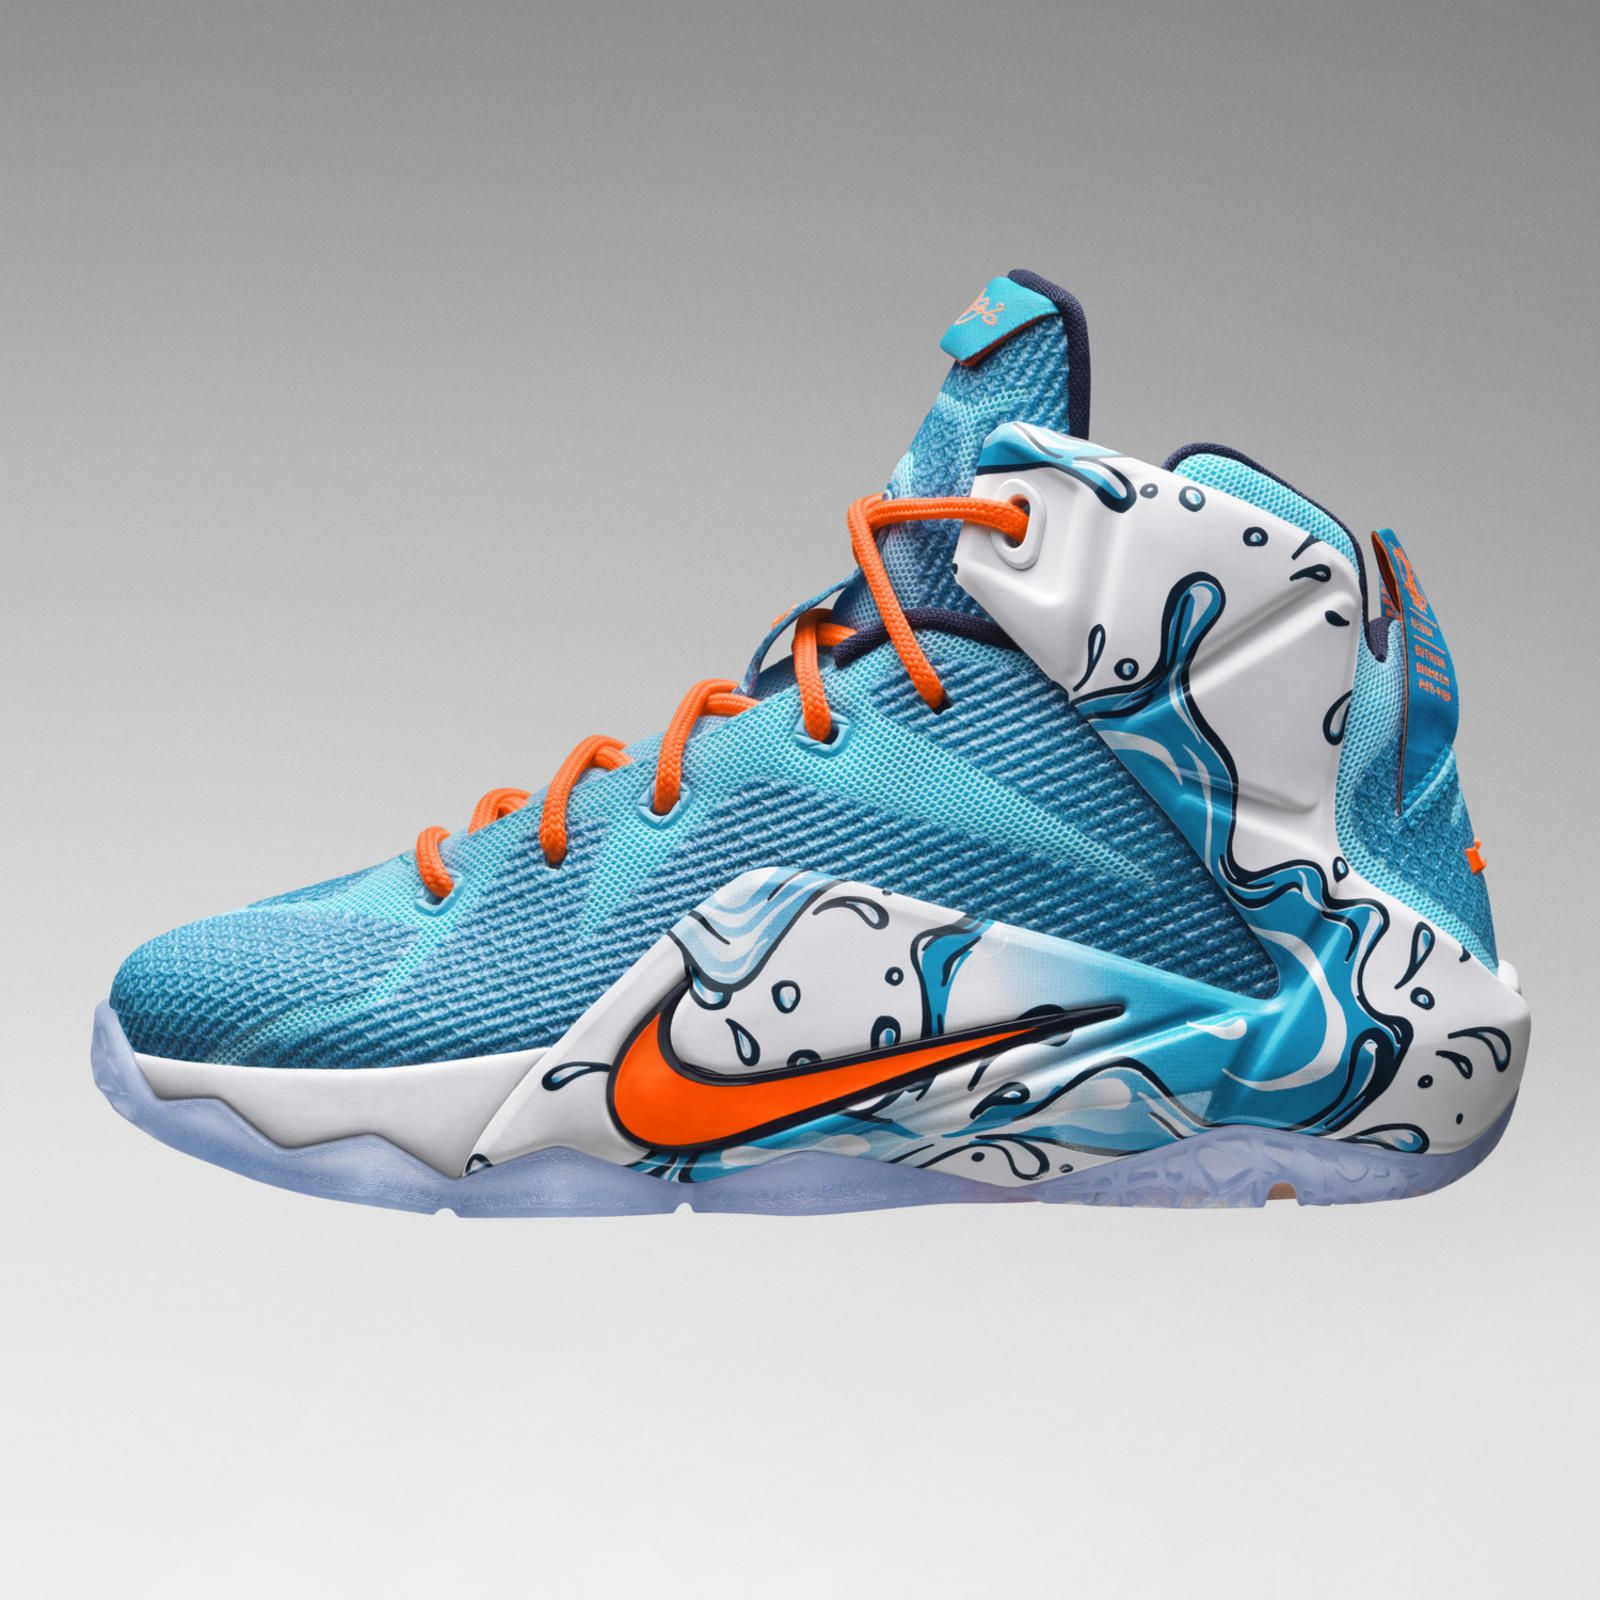 Nike News - Make a Splash With LeBron and Kobe  The Summer Time Fun Pack  Exclusive For Kids 43fdb57e3e7e